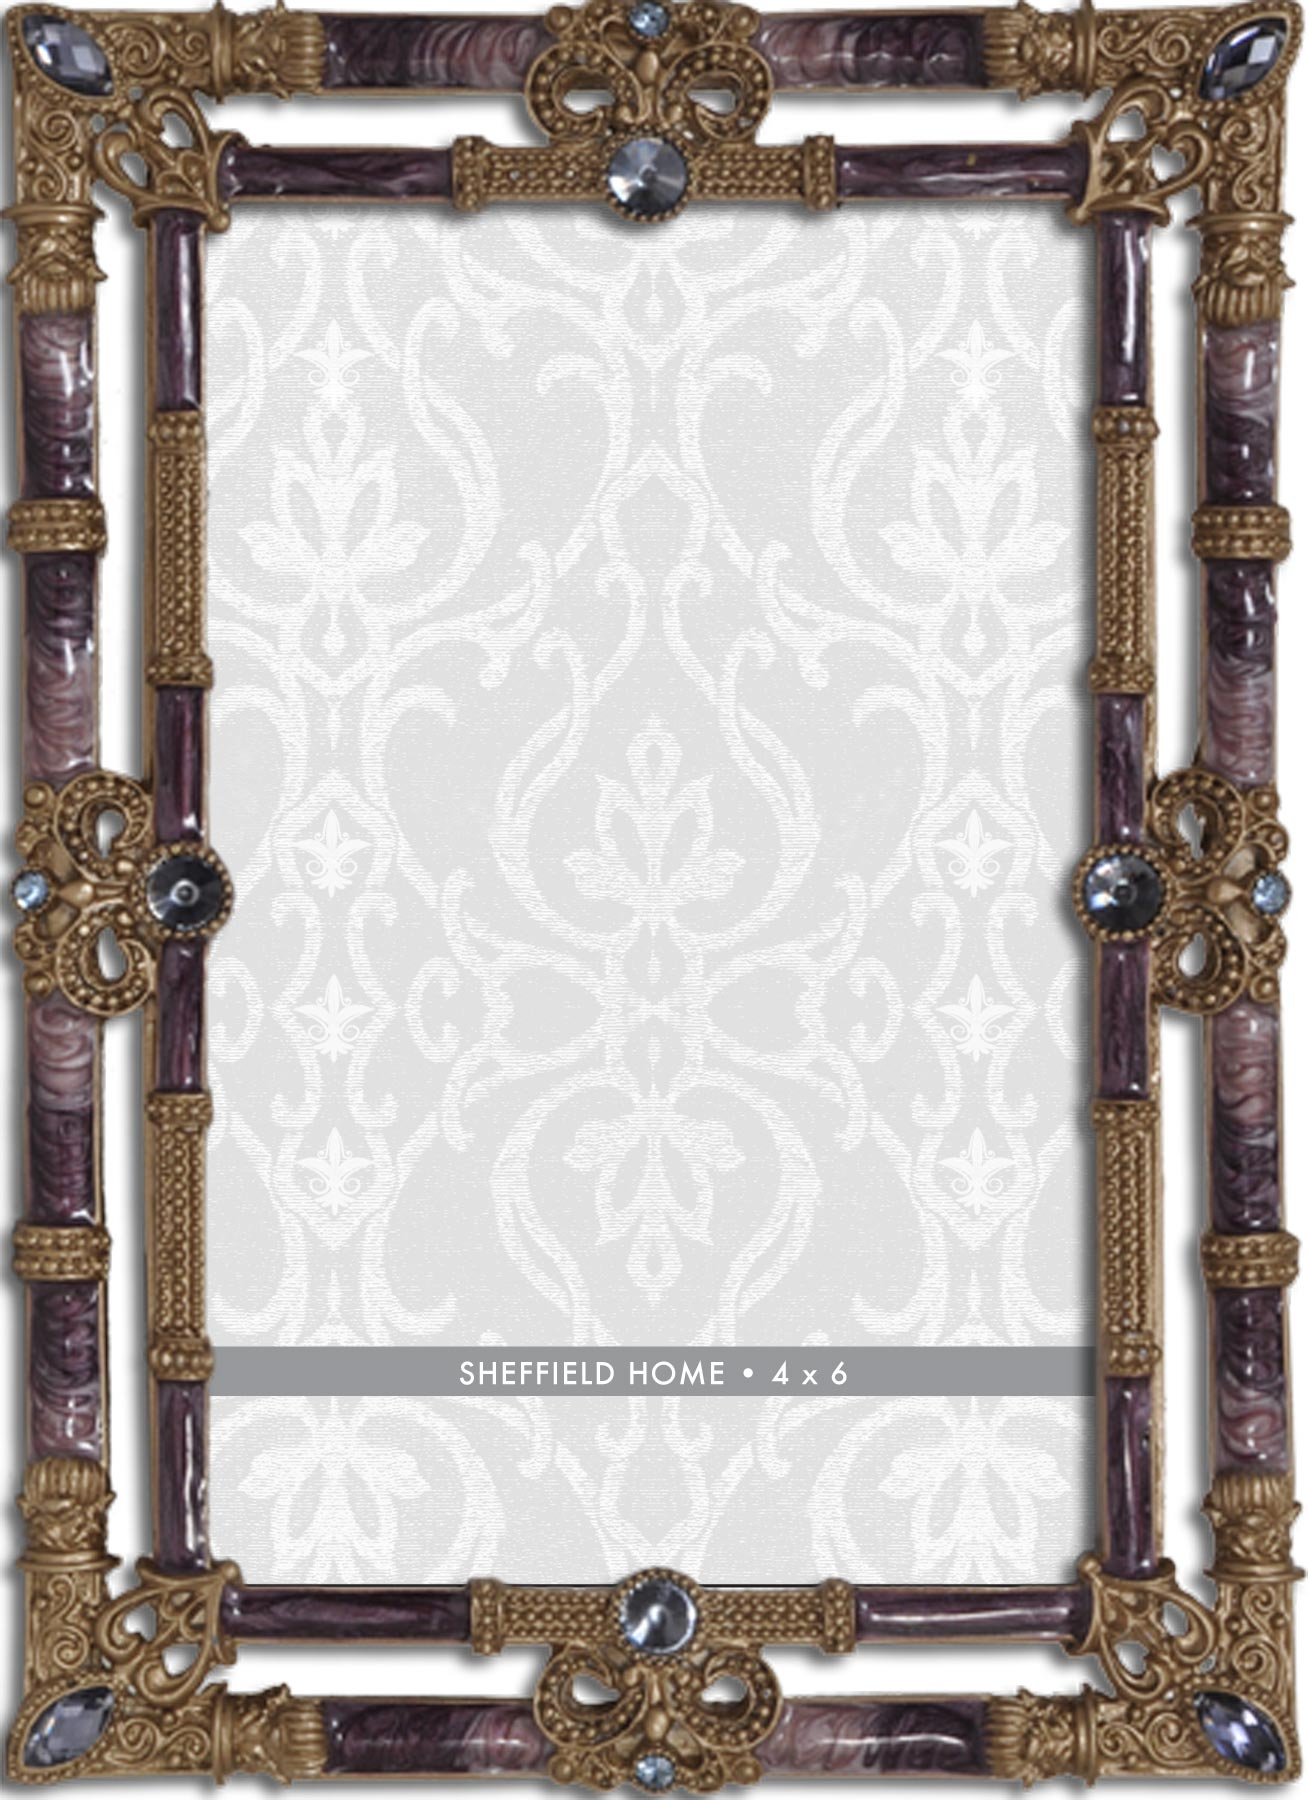 Tabletop Frame 4X6-Double Border Purple Jewel